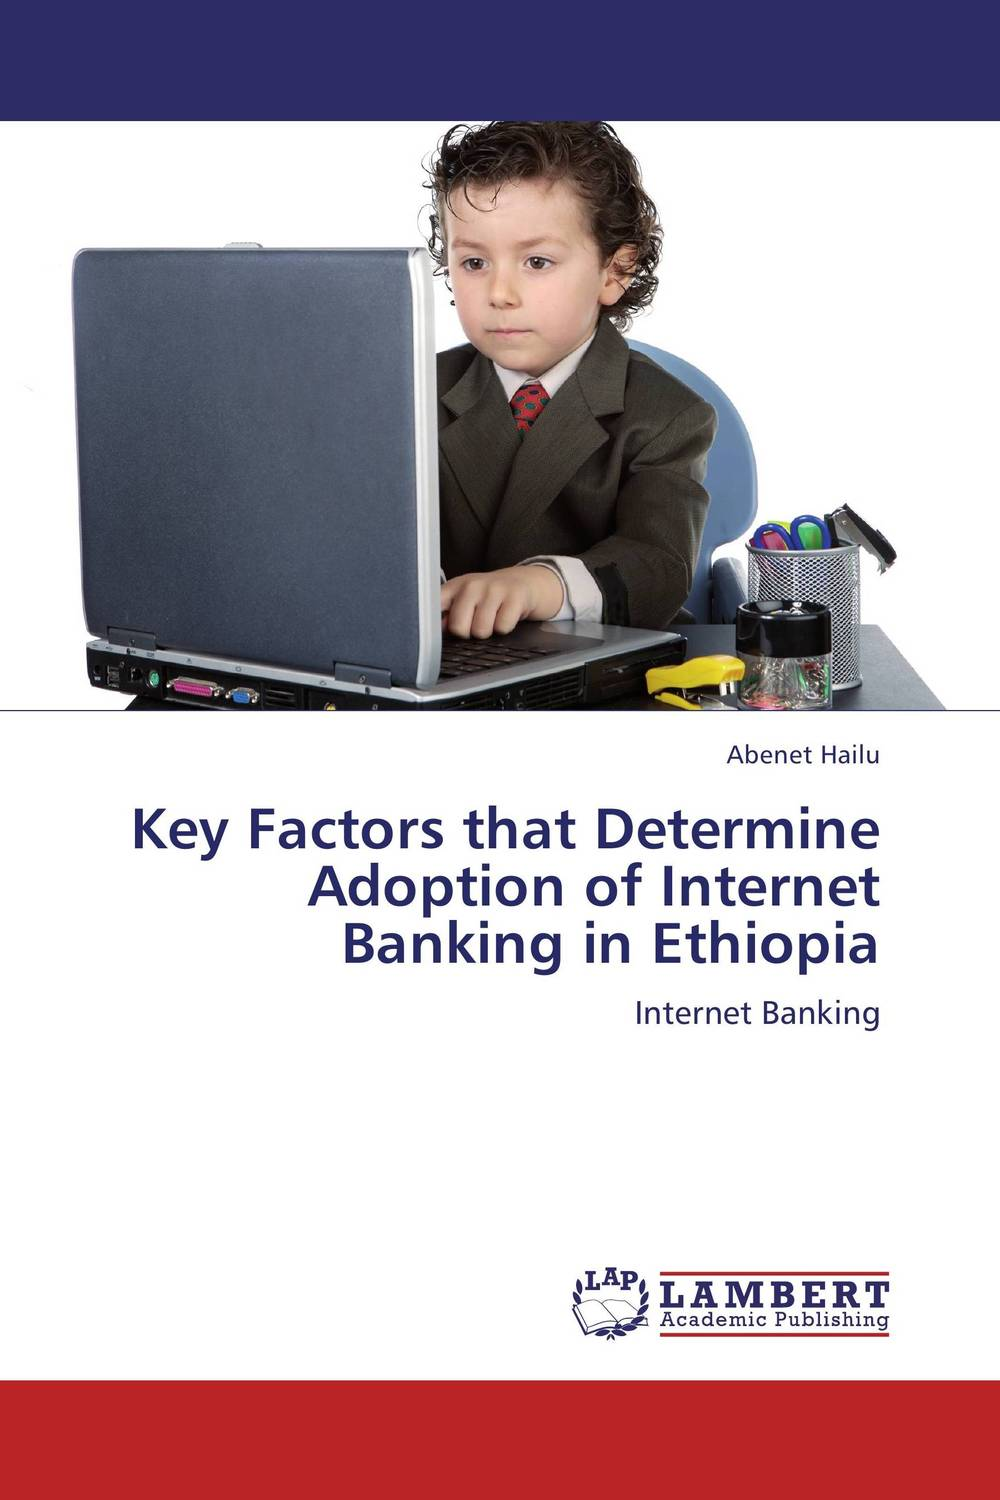 Key Factors that Determine Adoption of Internet Banking in Ethiopia mining design patterns for internet banking architecture